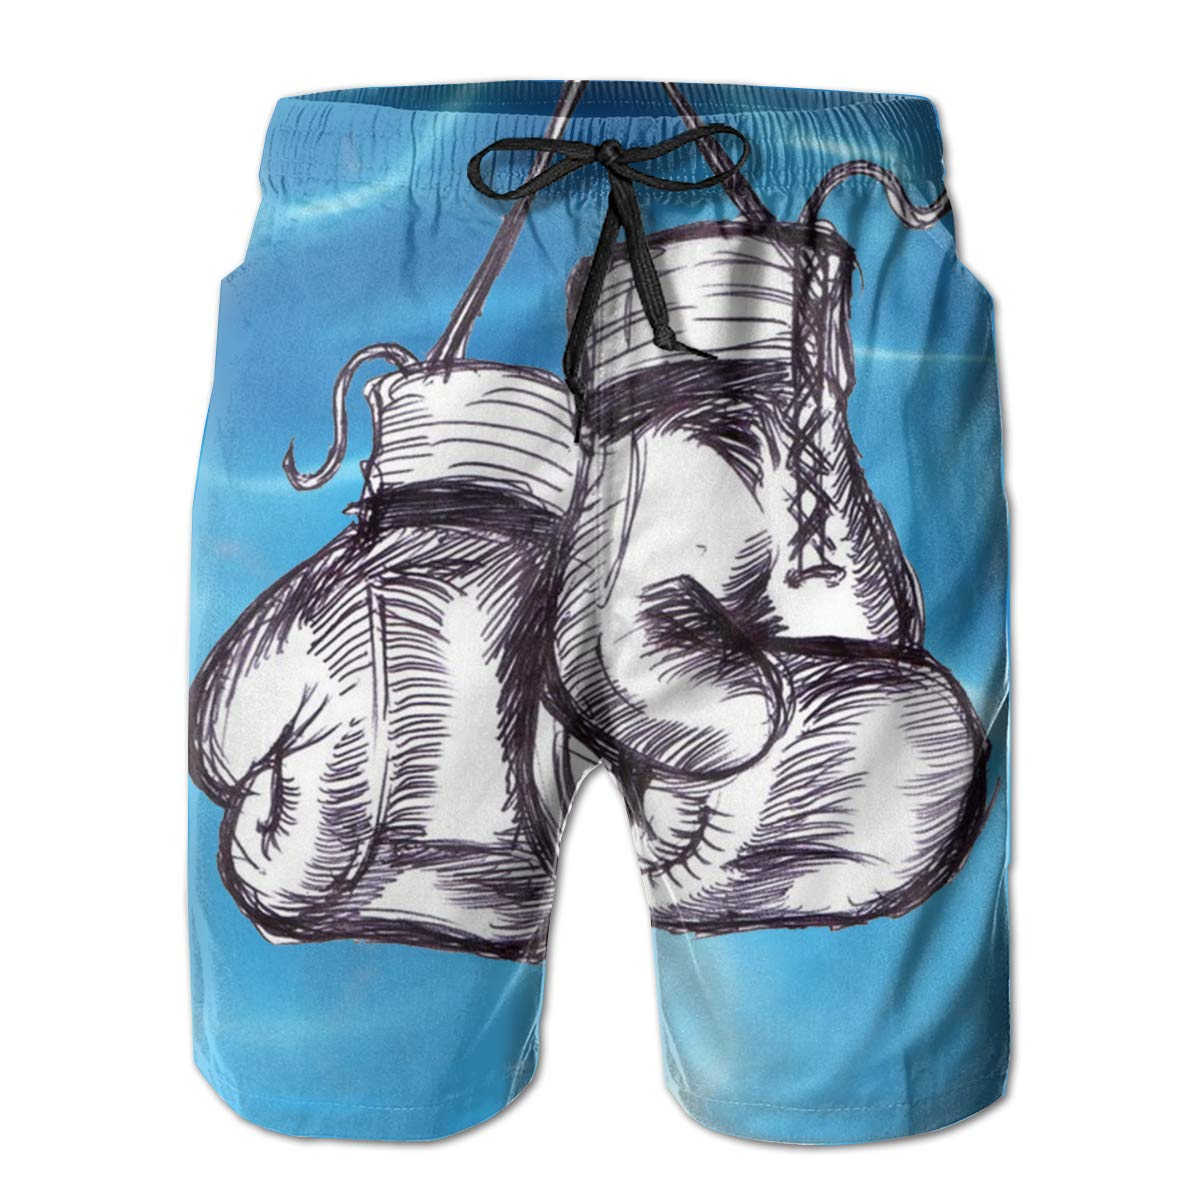 Oiyucv Mens Swim Trunks Boxing Gloves Quick Dry Board Shorts Bathing Suits Swimwear Volley Beach Trunks